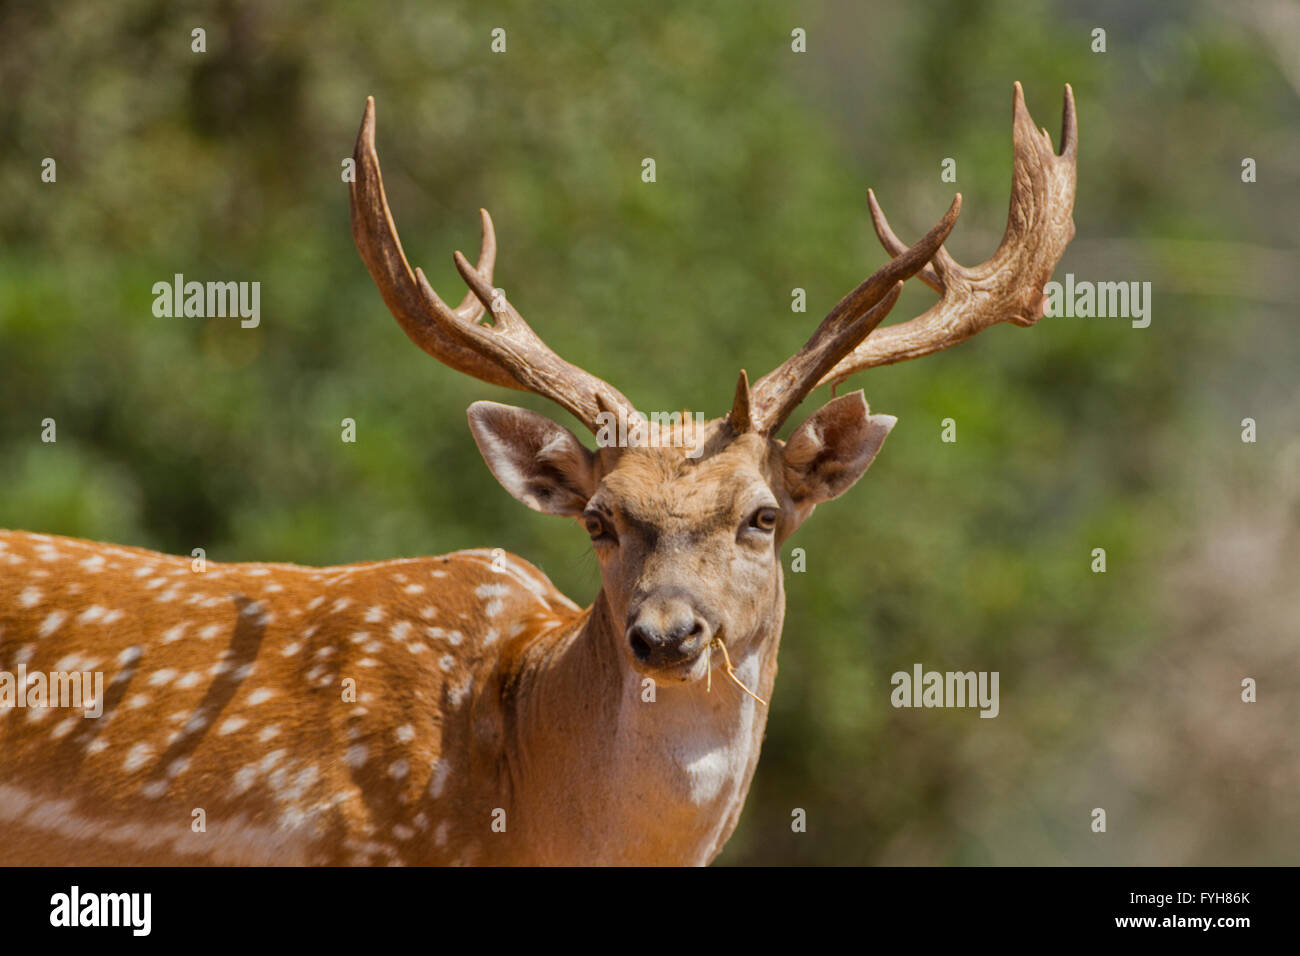 Male Mesopotamian Fallow deer (Dama mesopotamica) Photographed in Israel Carmel forest in July Stock Photo